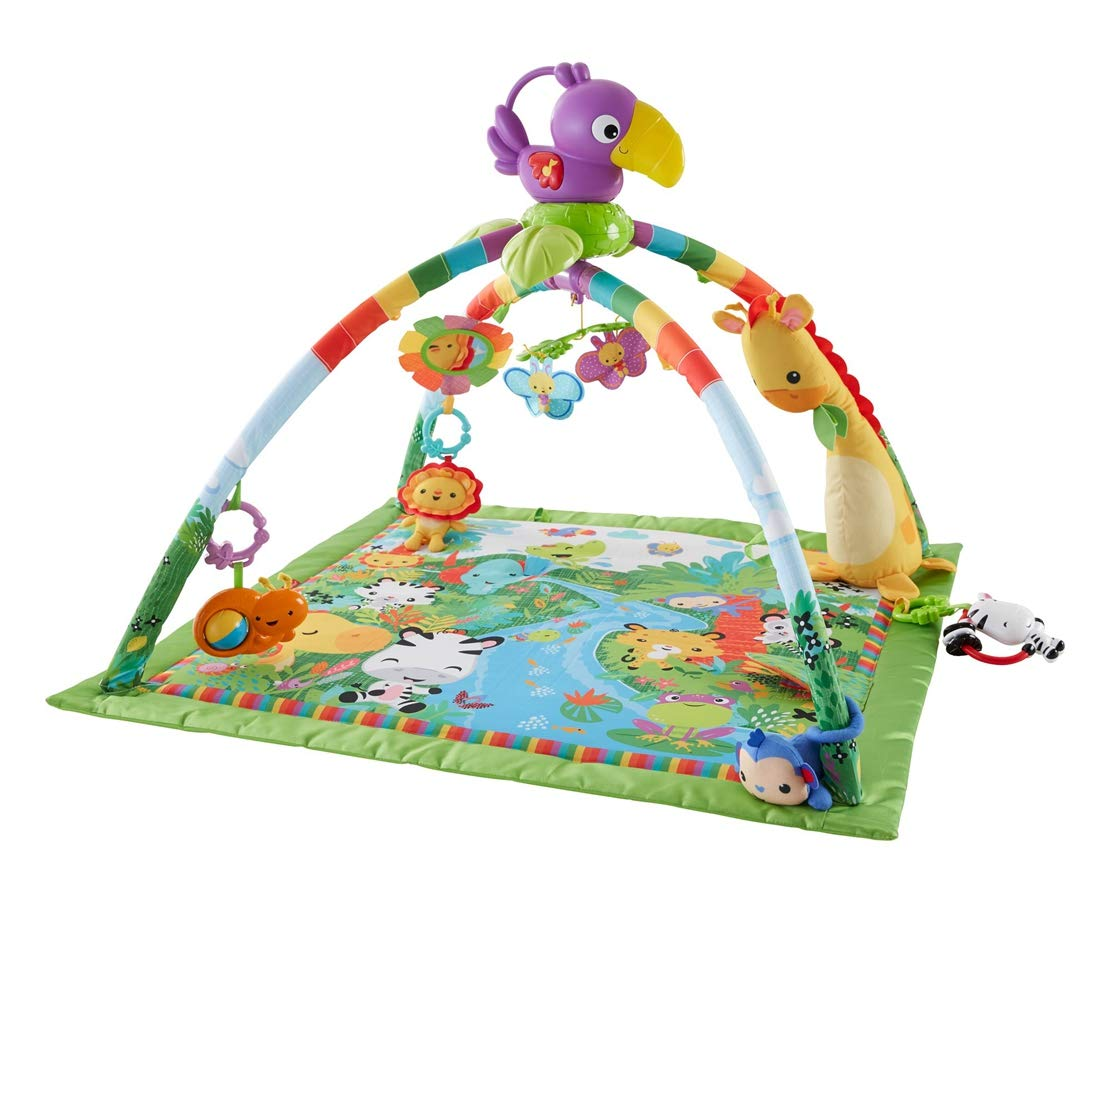 Fisher-Price DFP08 Rainforest Gym Suitable from Birth for New-Borns Baby Playmat with Music and Lights Baby